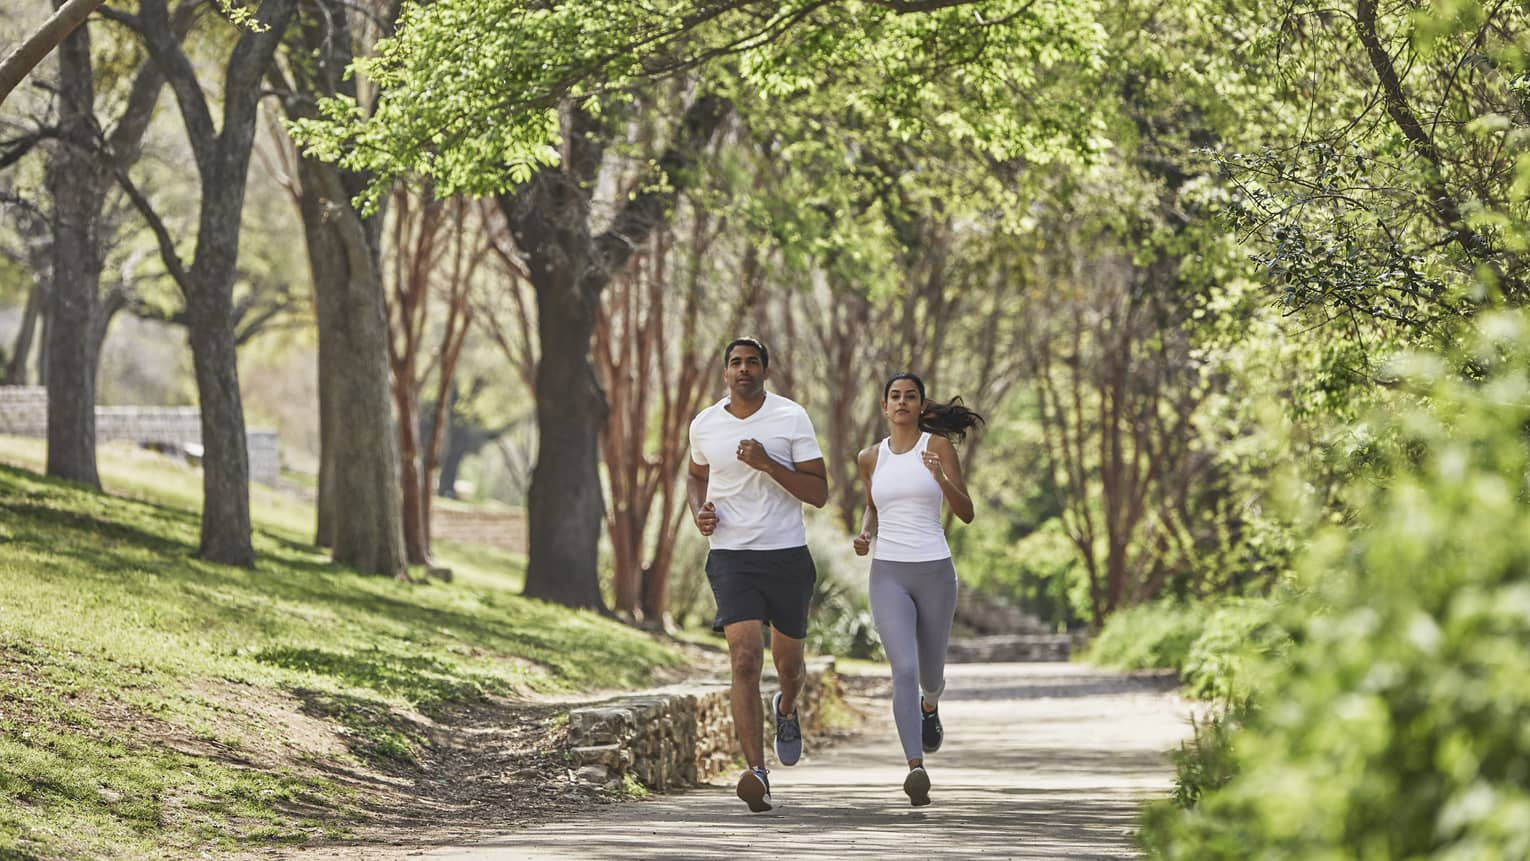 Two guests run together along a tree-lined path